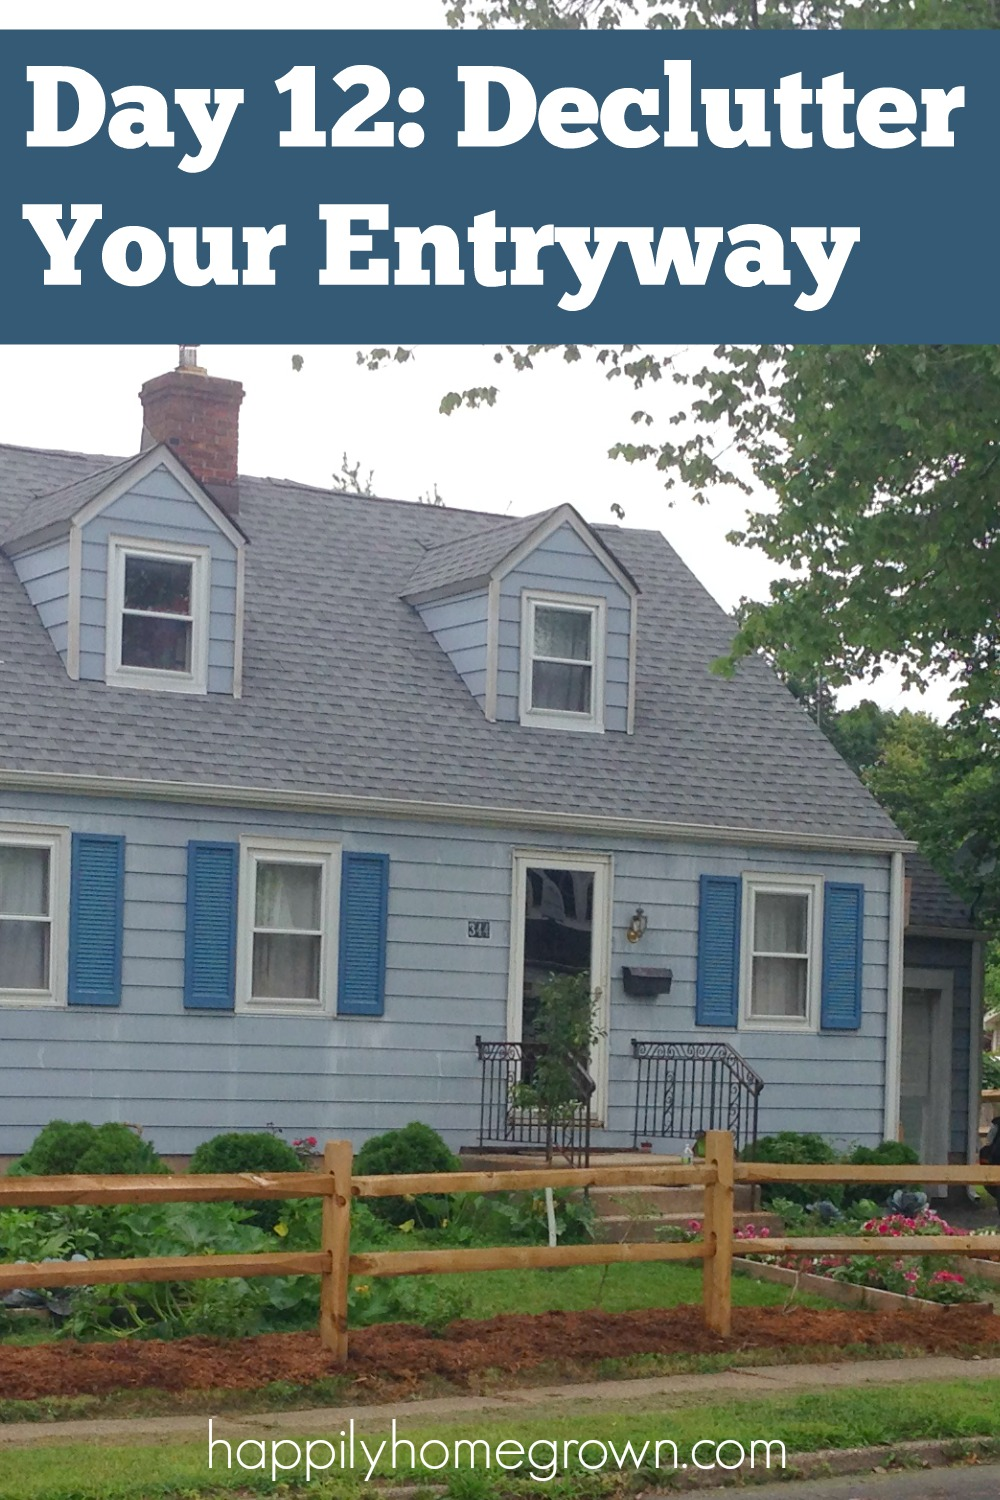 Day 12 Declutter Your Entryway